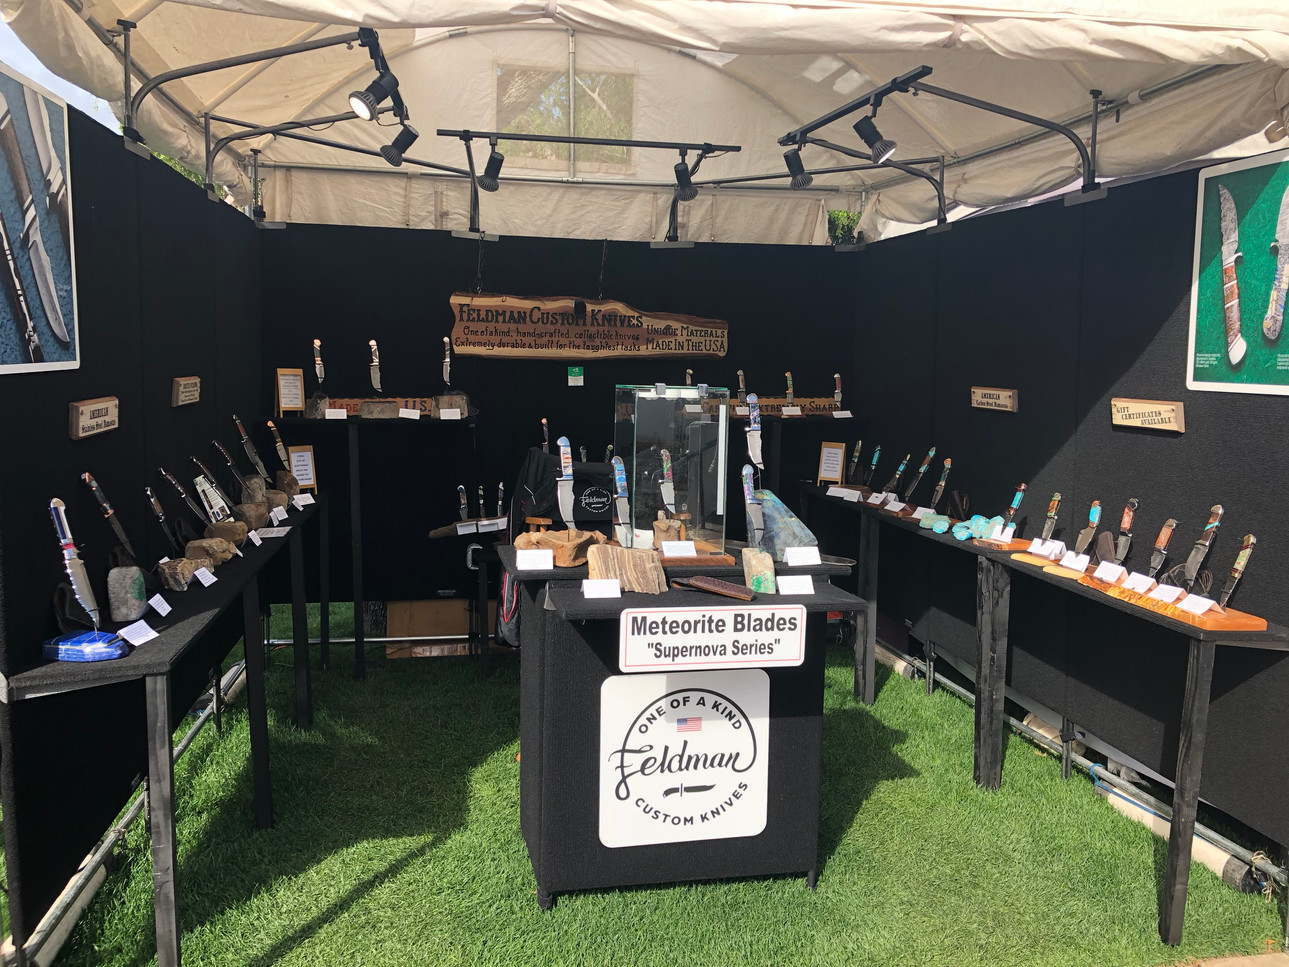 Feldman Custom Knives booth at Scottsdale Fine Art Show